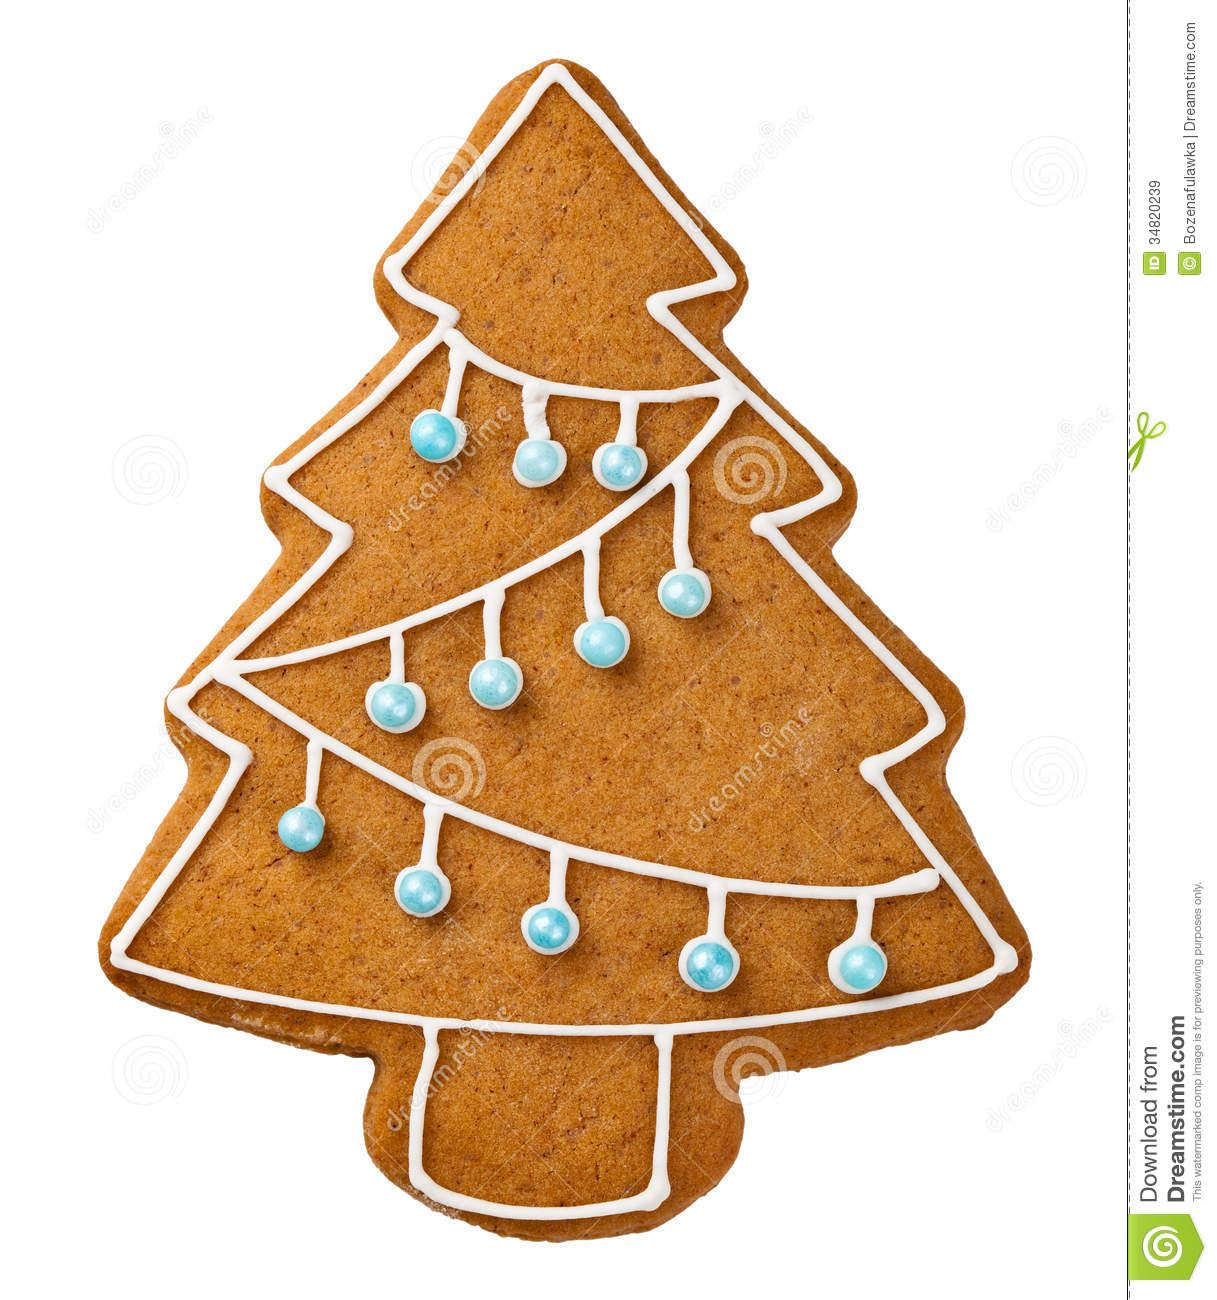 Gingerbread Tree Royalty Free Stock Images - Image: 34820239